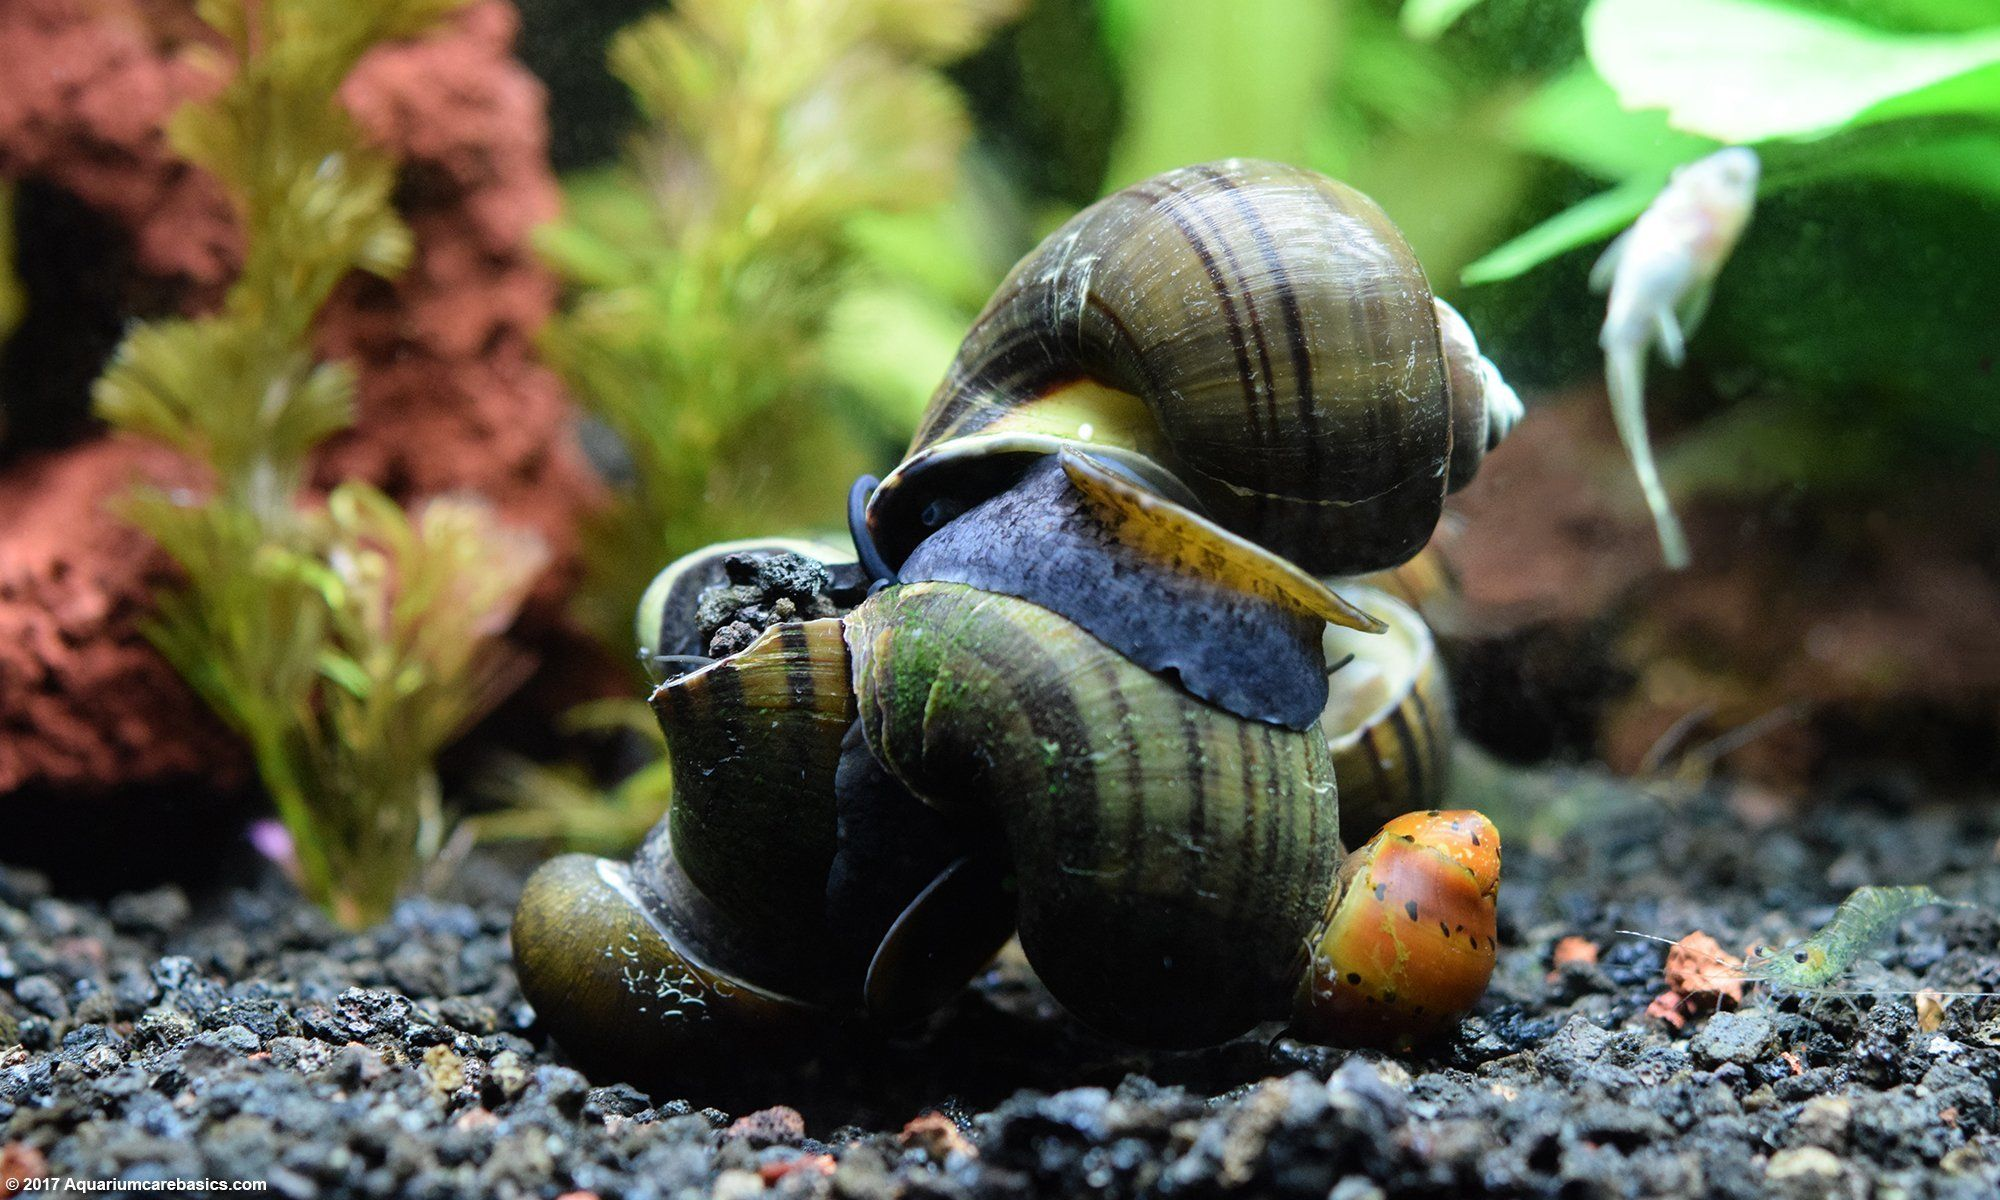 Freshwater Snails Can Be Helpful Tank Cleaners And Algae Eaters Or Annoying Pests That Can Reproduce And Overrun A Tank Quickly Dep Aquarium Snails Snail Fresh Water